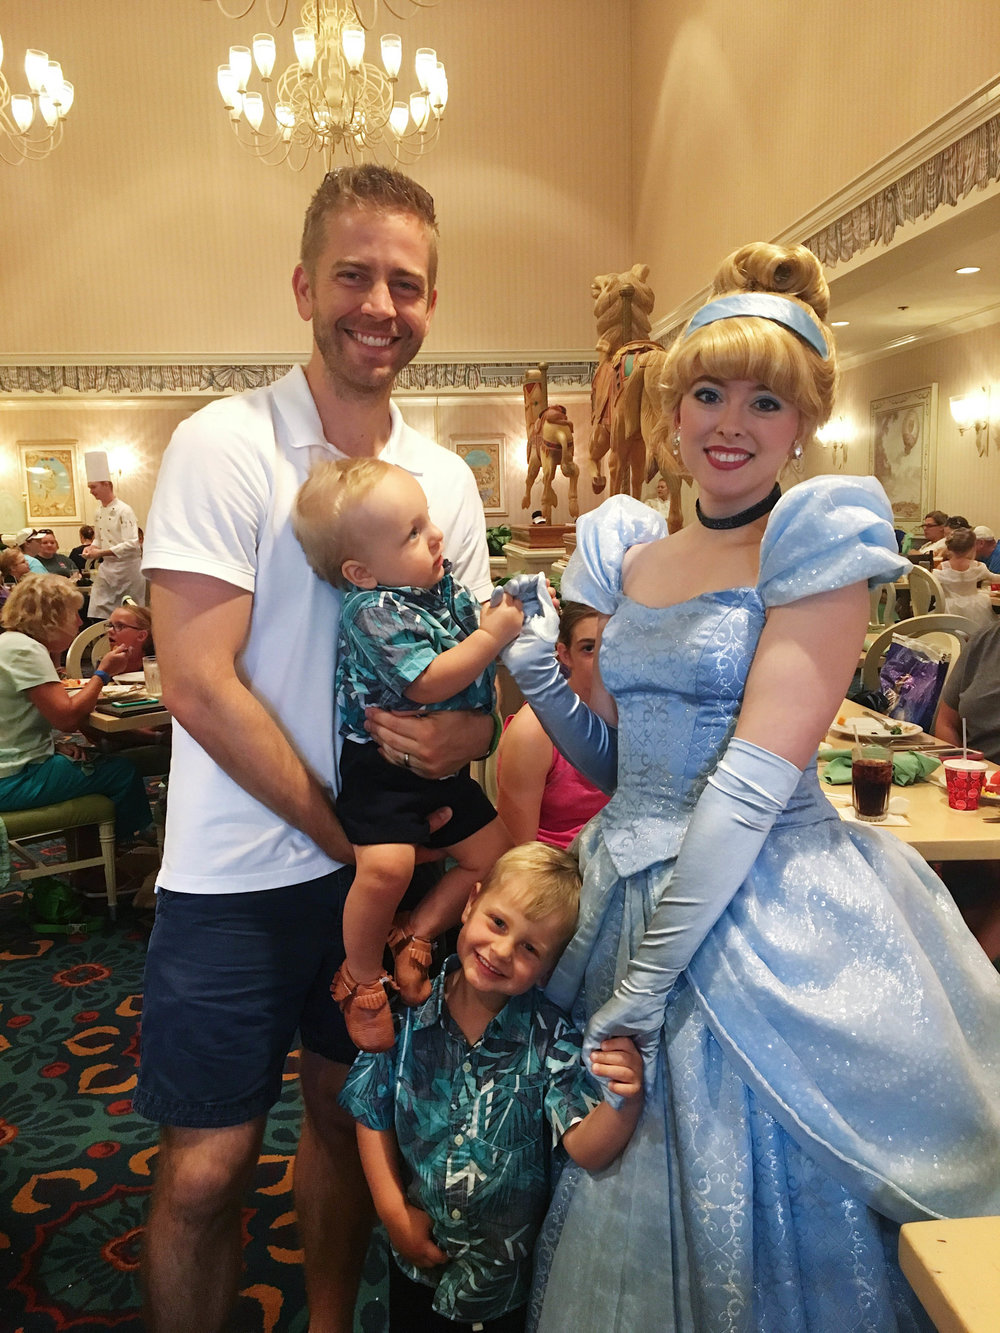 Dax tolerated Cinderella. Everett legit fell in love. And don't let Stevie fool you - we was a tiny bit enamored too.